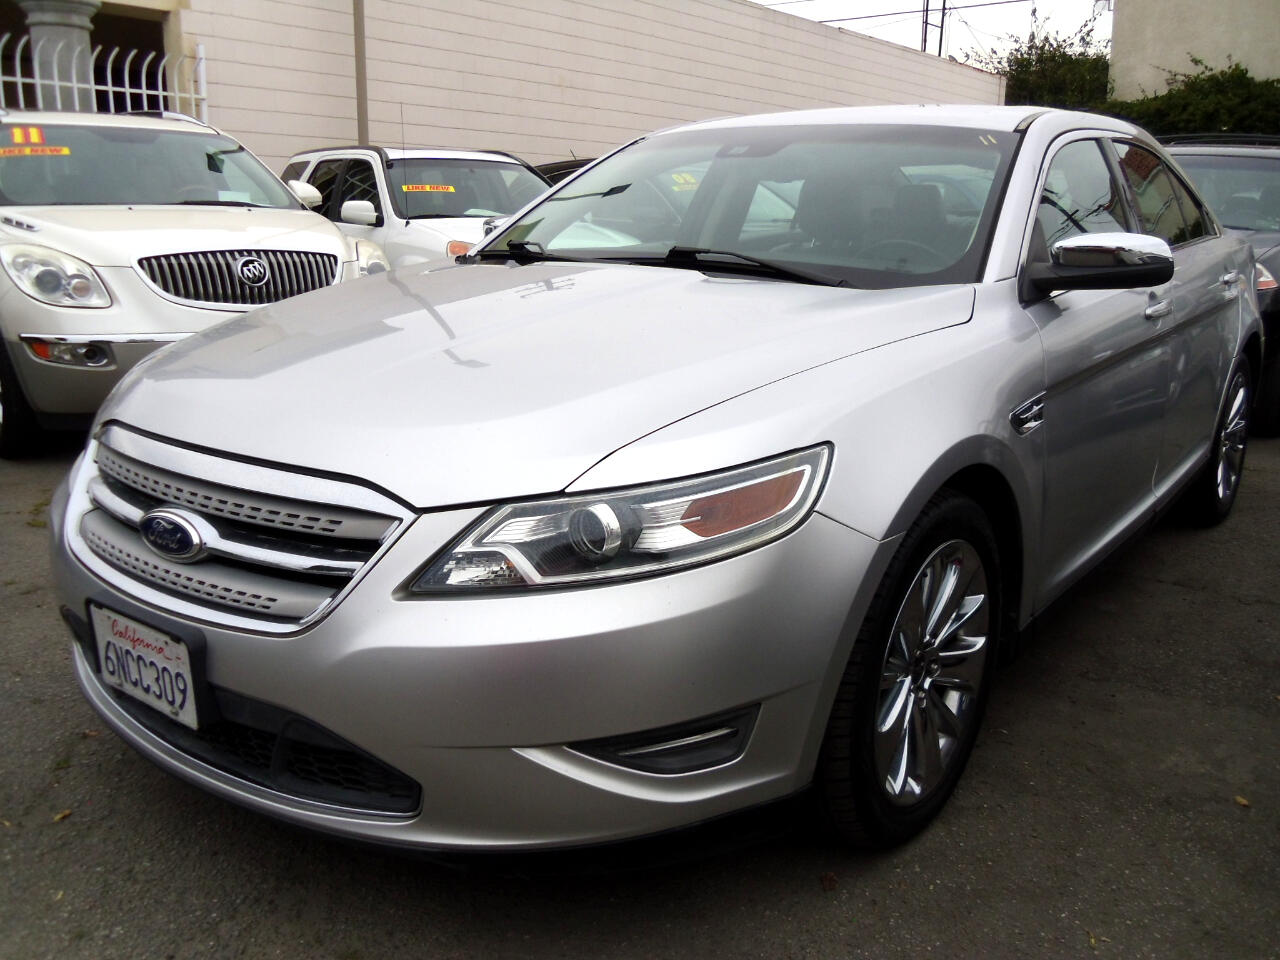 Ford Taurus 4dr Sdn Limited FWD 2010